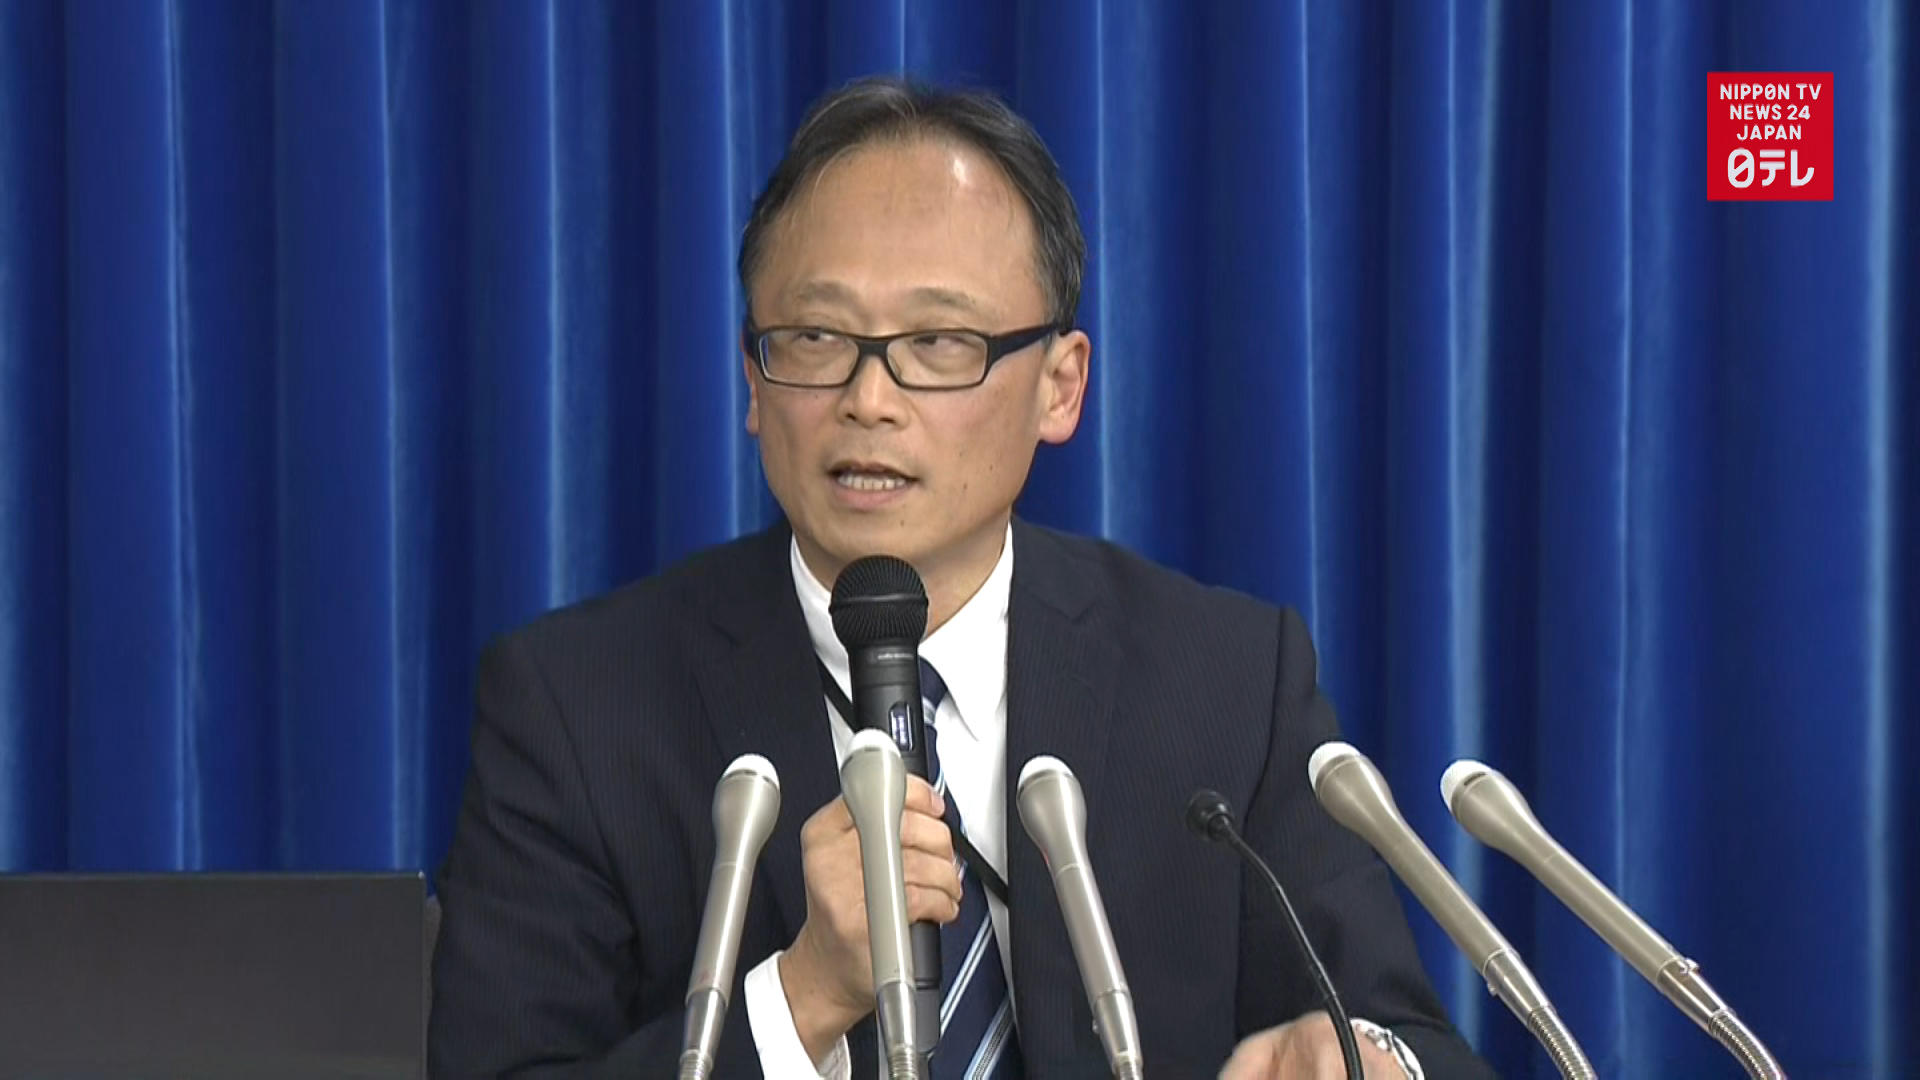 CORONAVIRUS: 3 new cases in Japan, total now 17